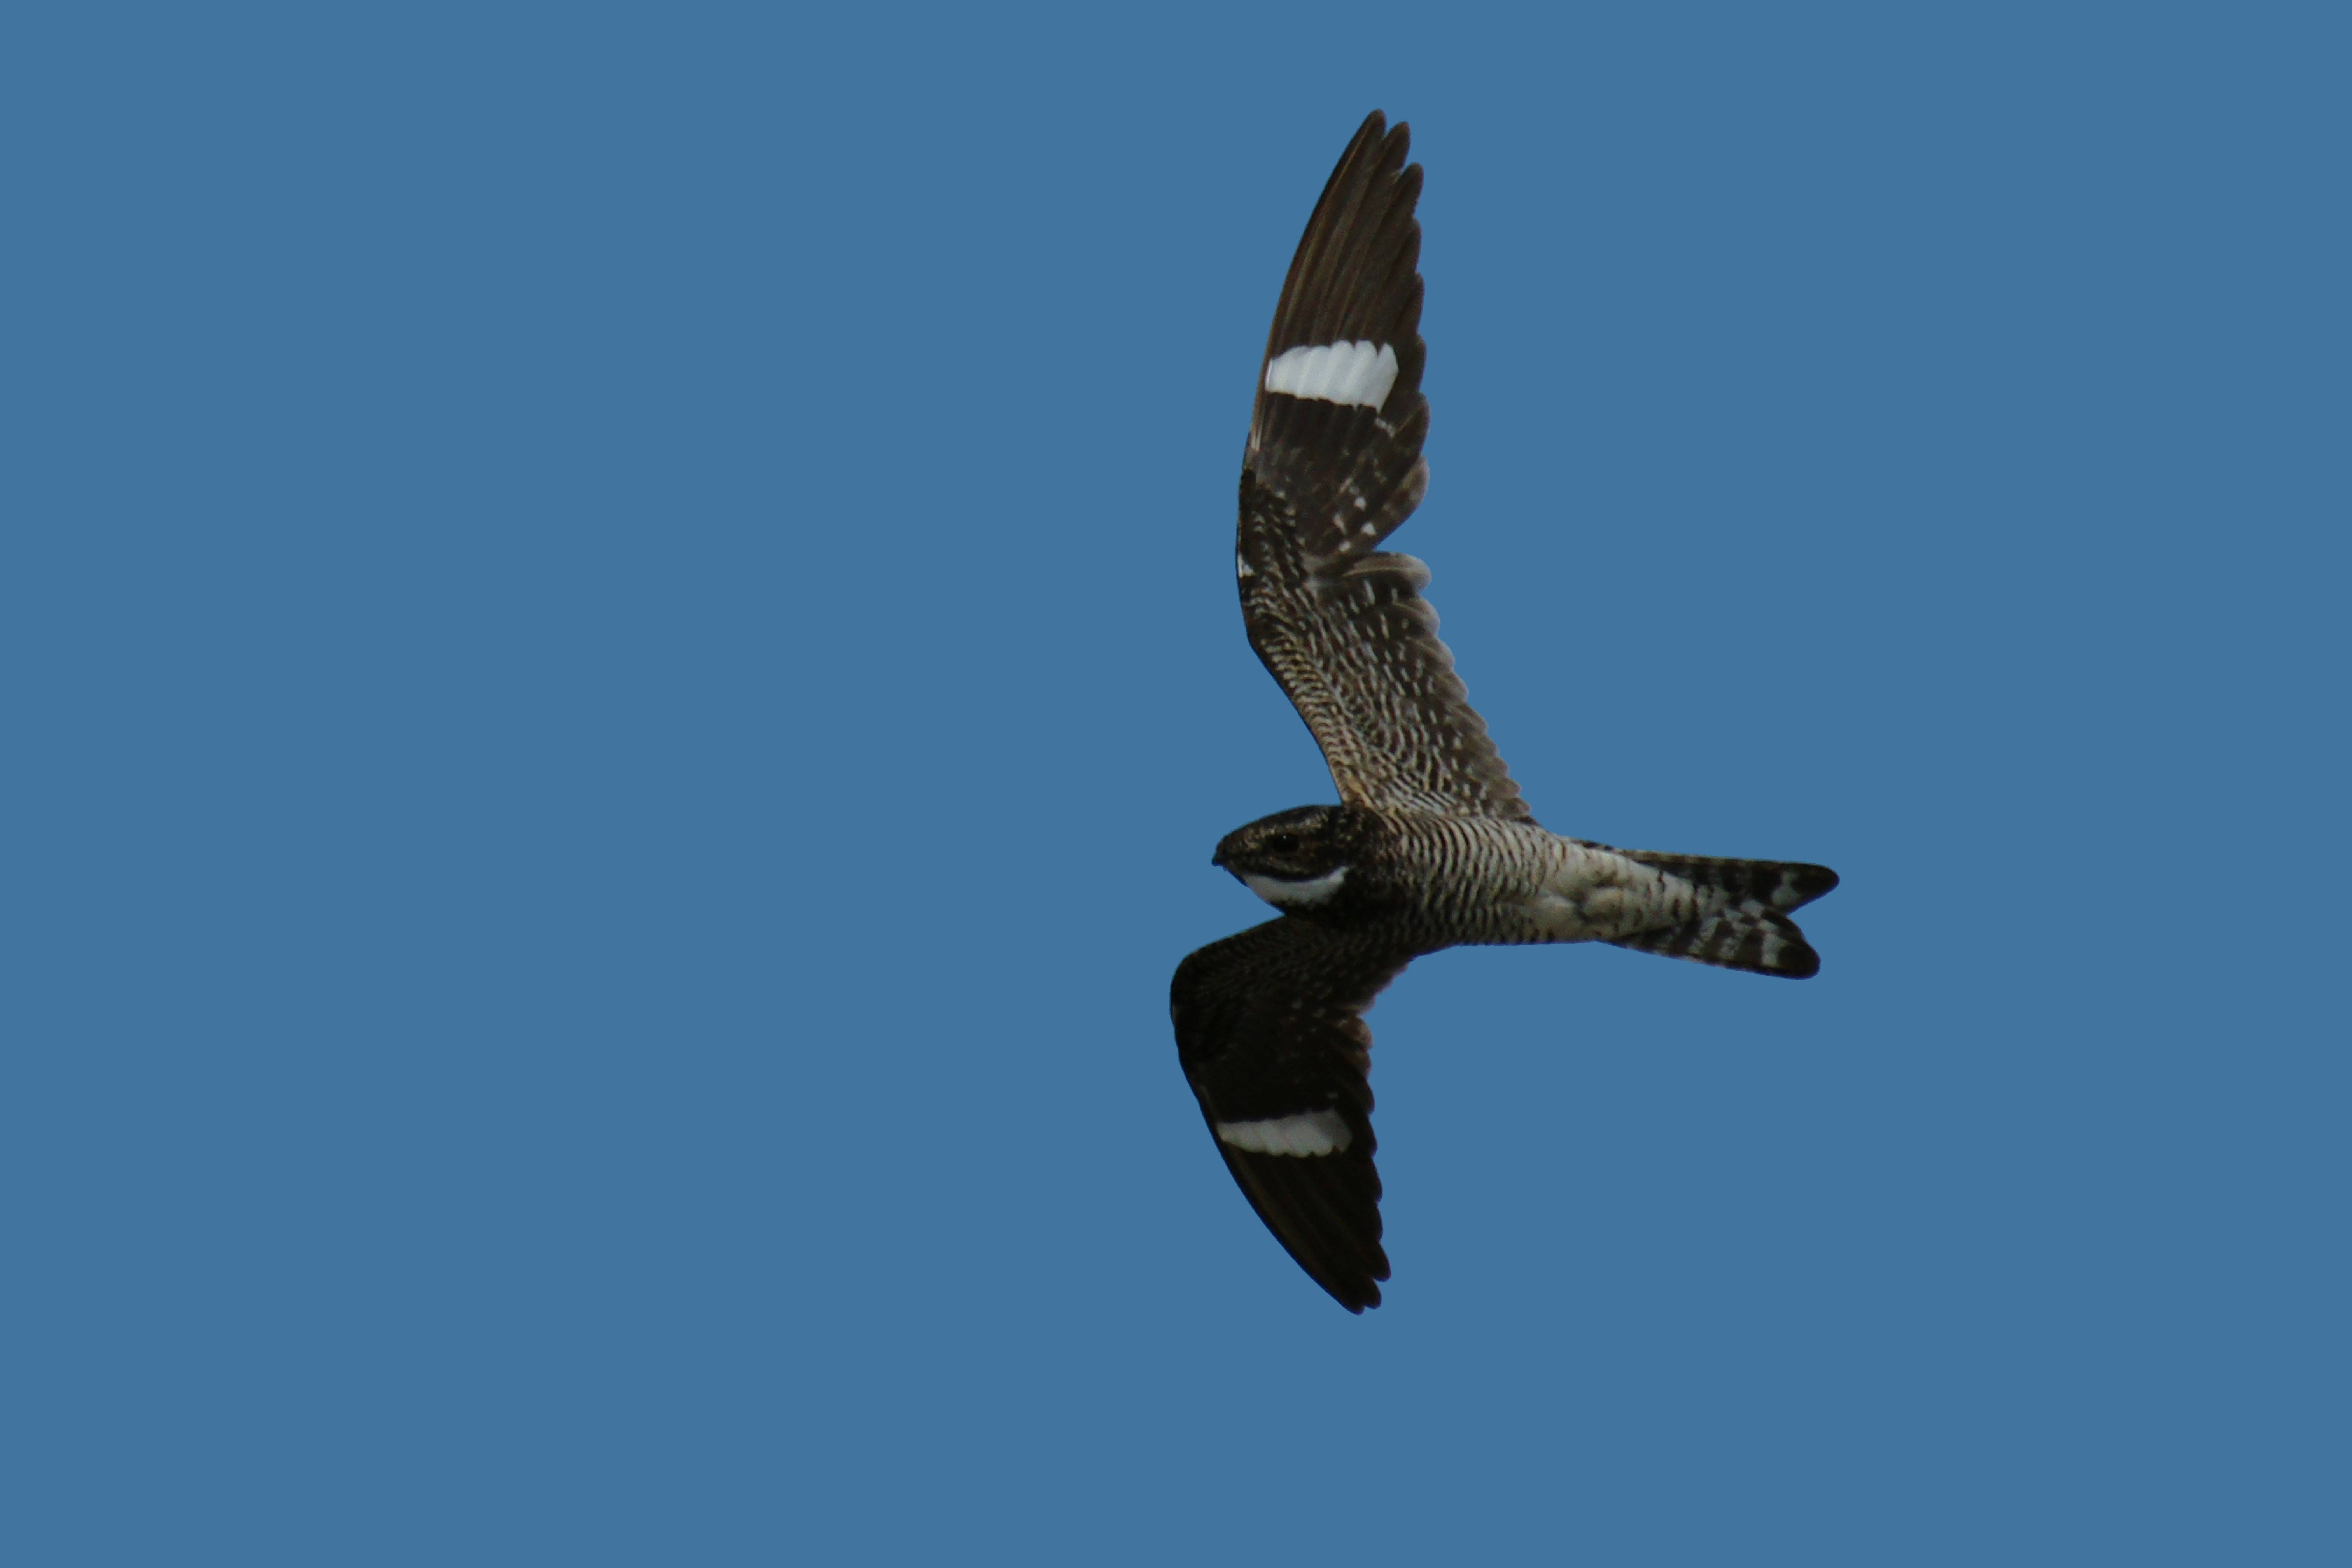 A nighthawk is one of the birds that can be spotted at twilight.